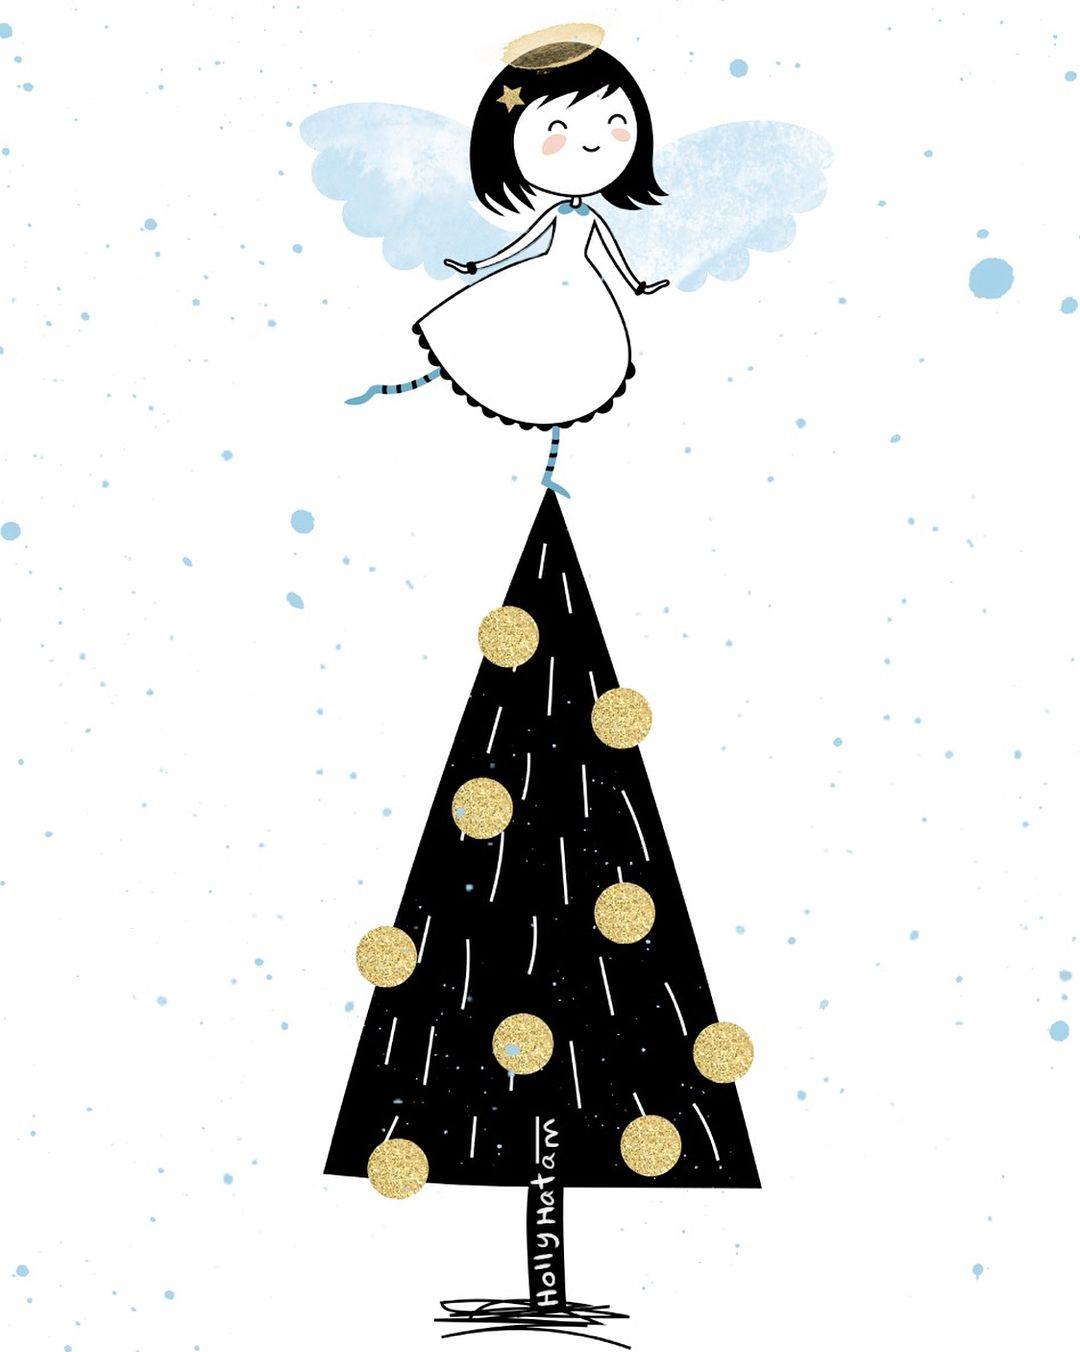 christmas angel which one do you guys like better illustration childrensillustration - What Do Guys Like For Christmas